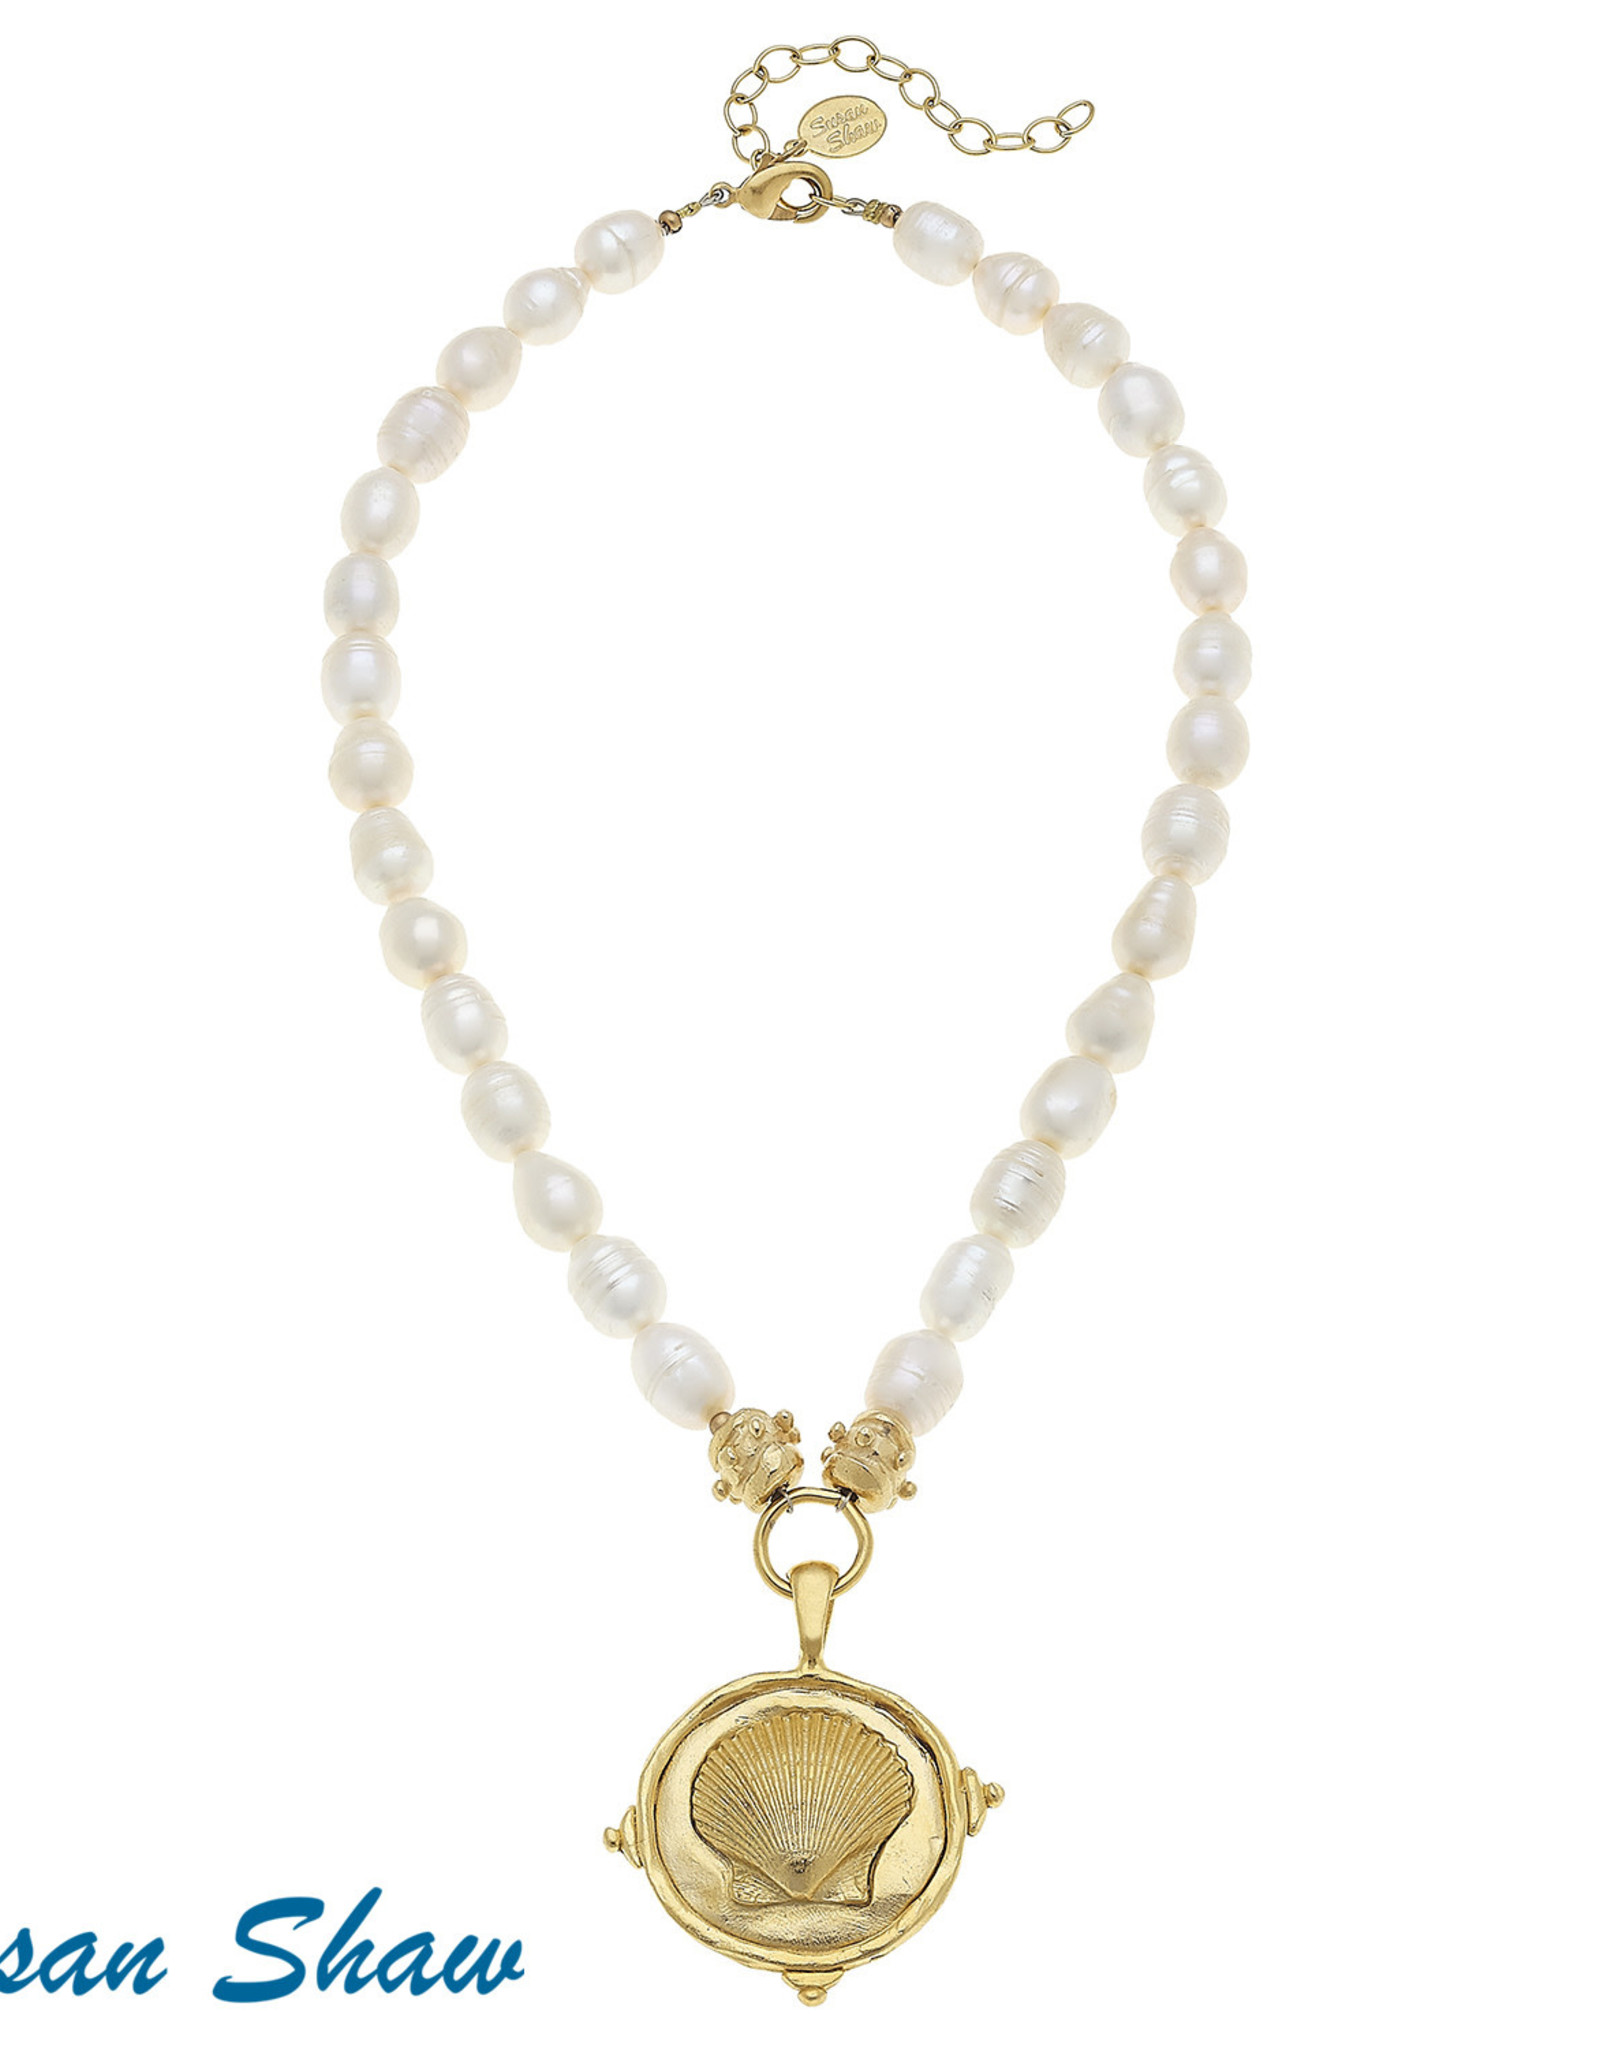 Susan Shaw Shell Necklace